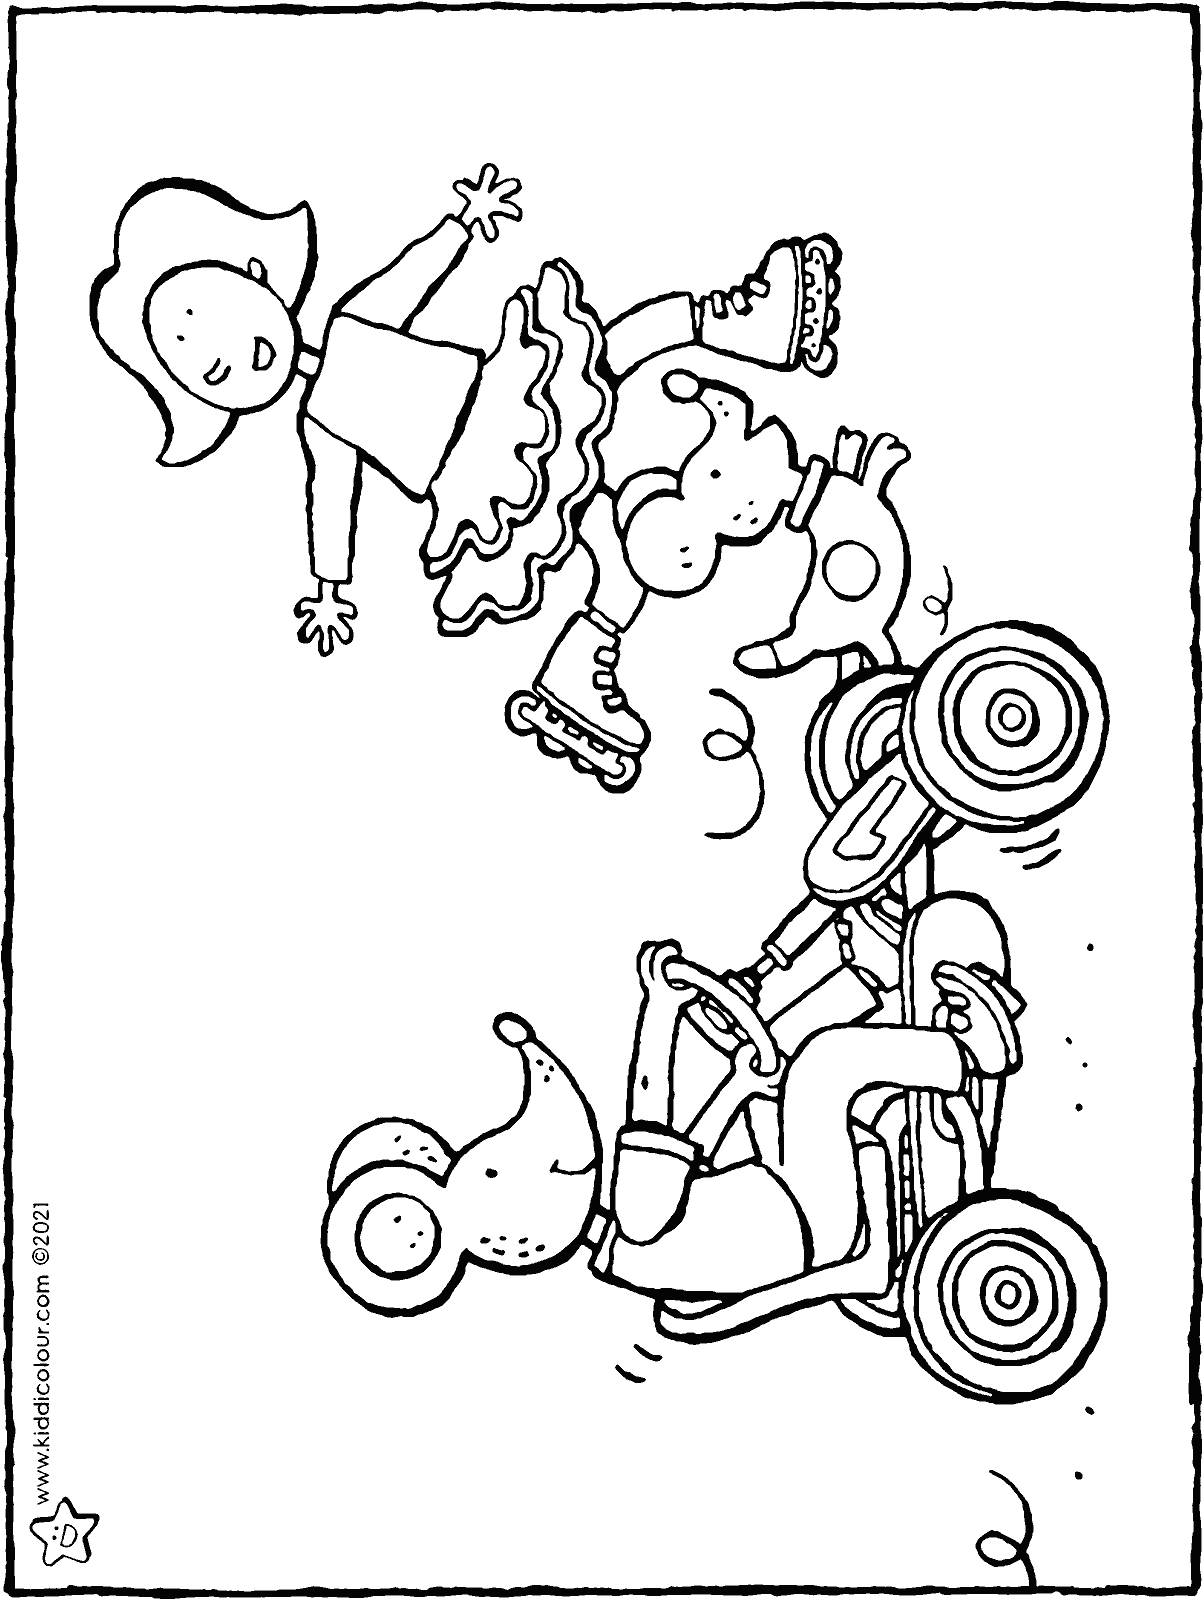 Emma and Thomas on wheels colouring page drawing picture 01V